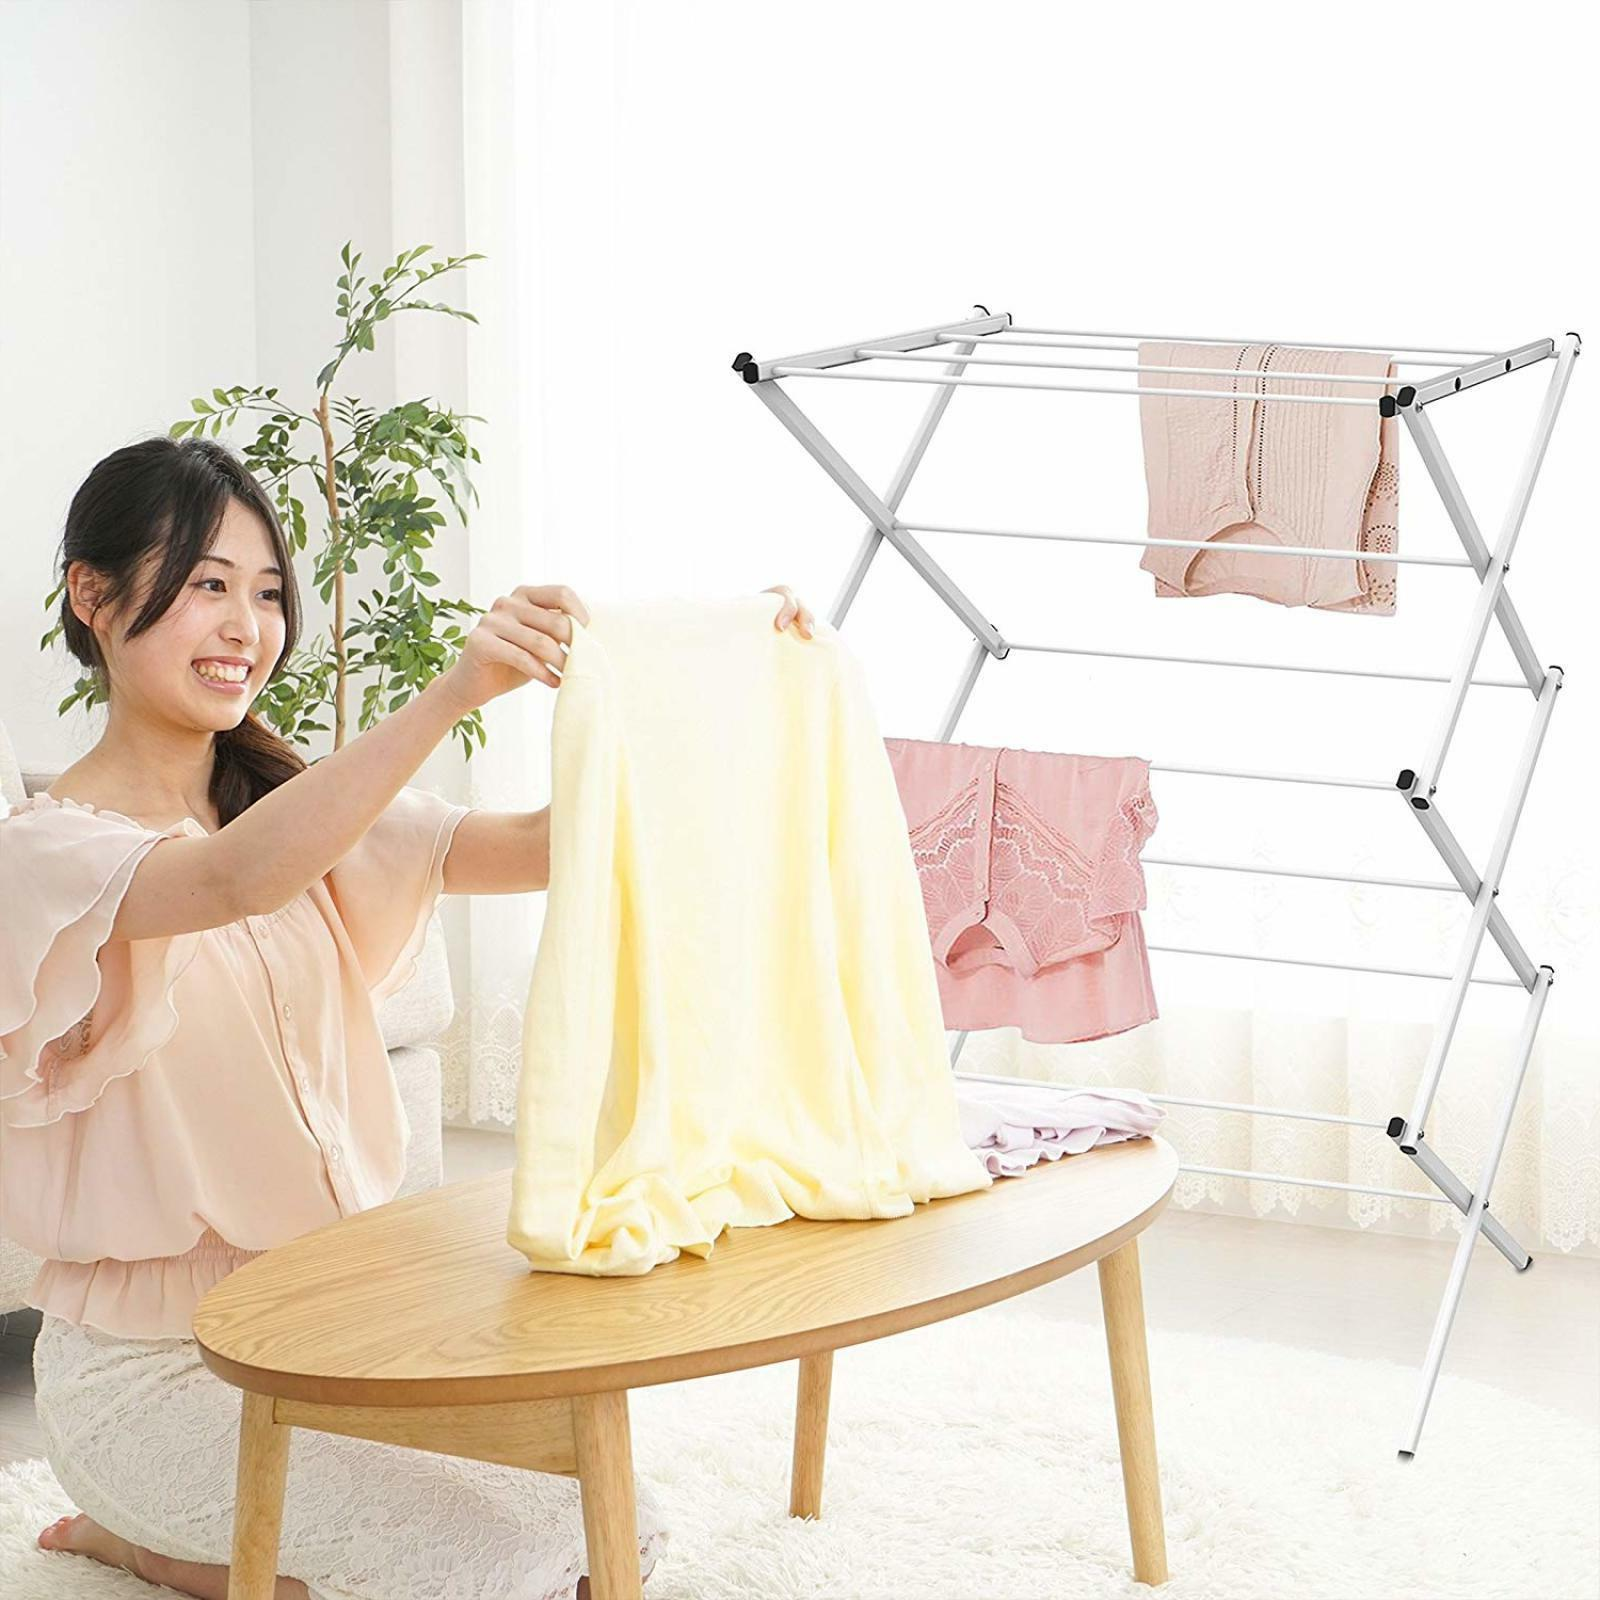 Foldable Storage Dryer Hanger Stand